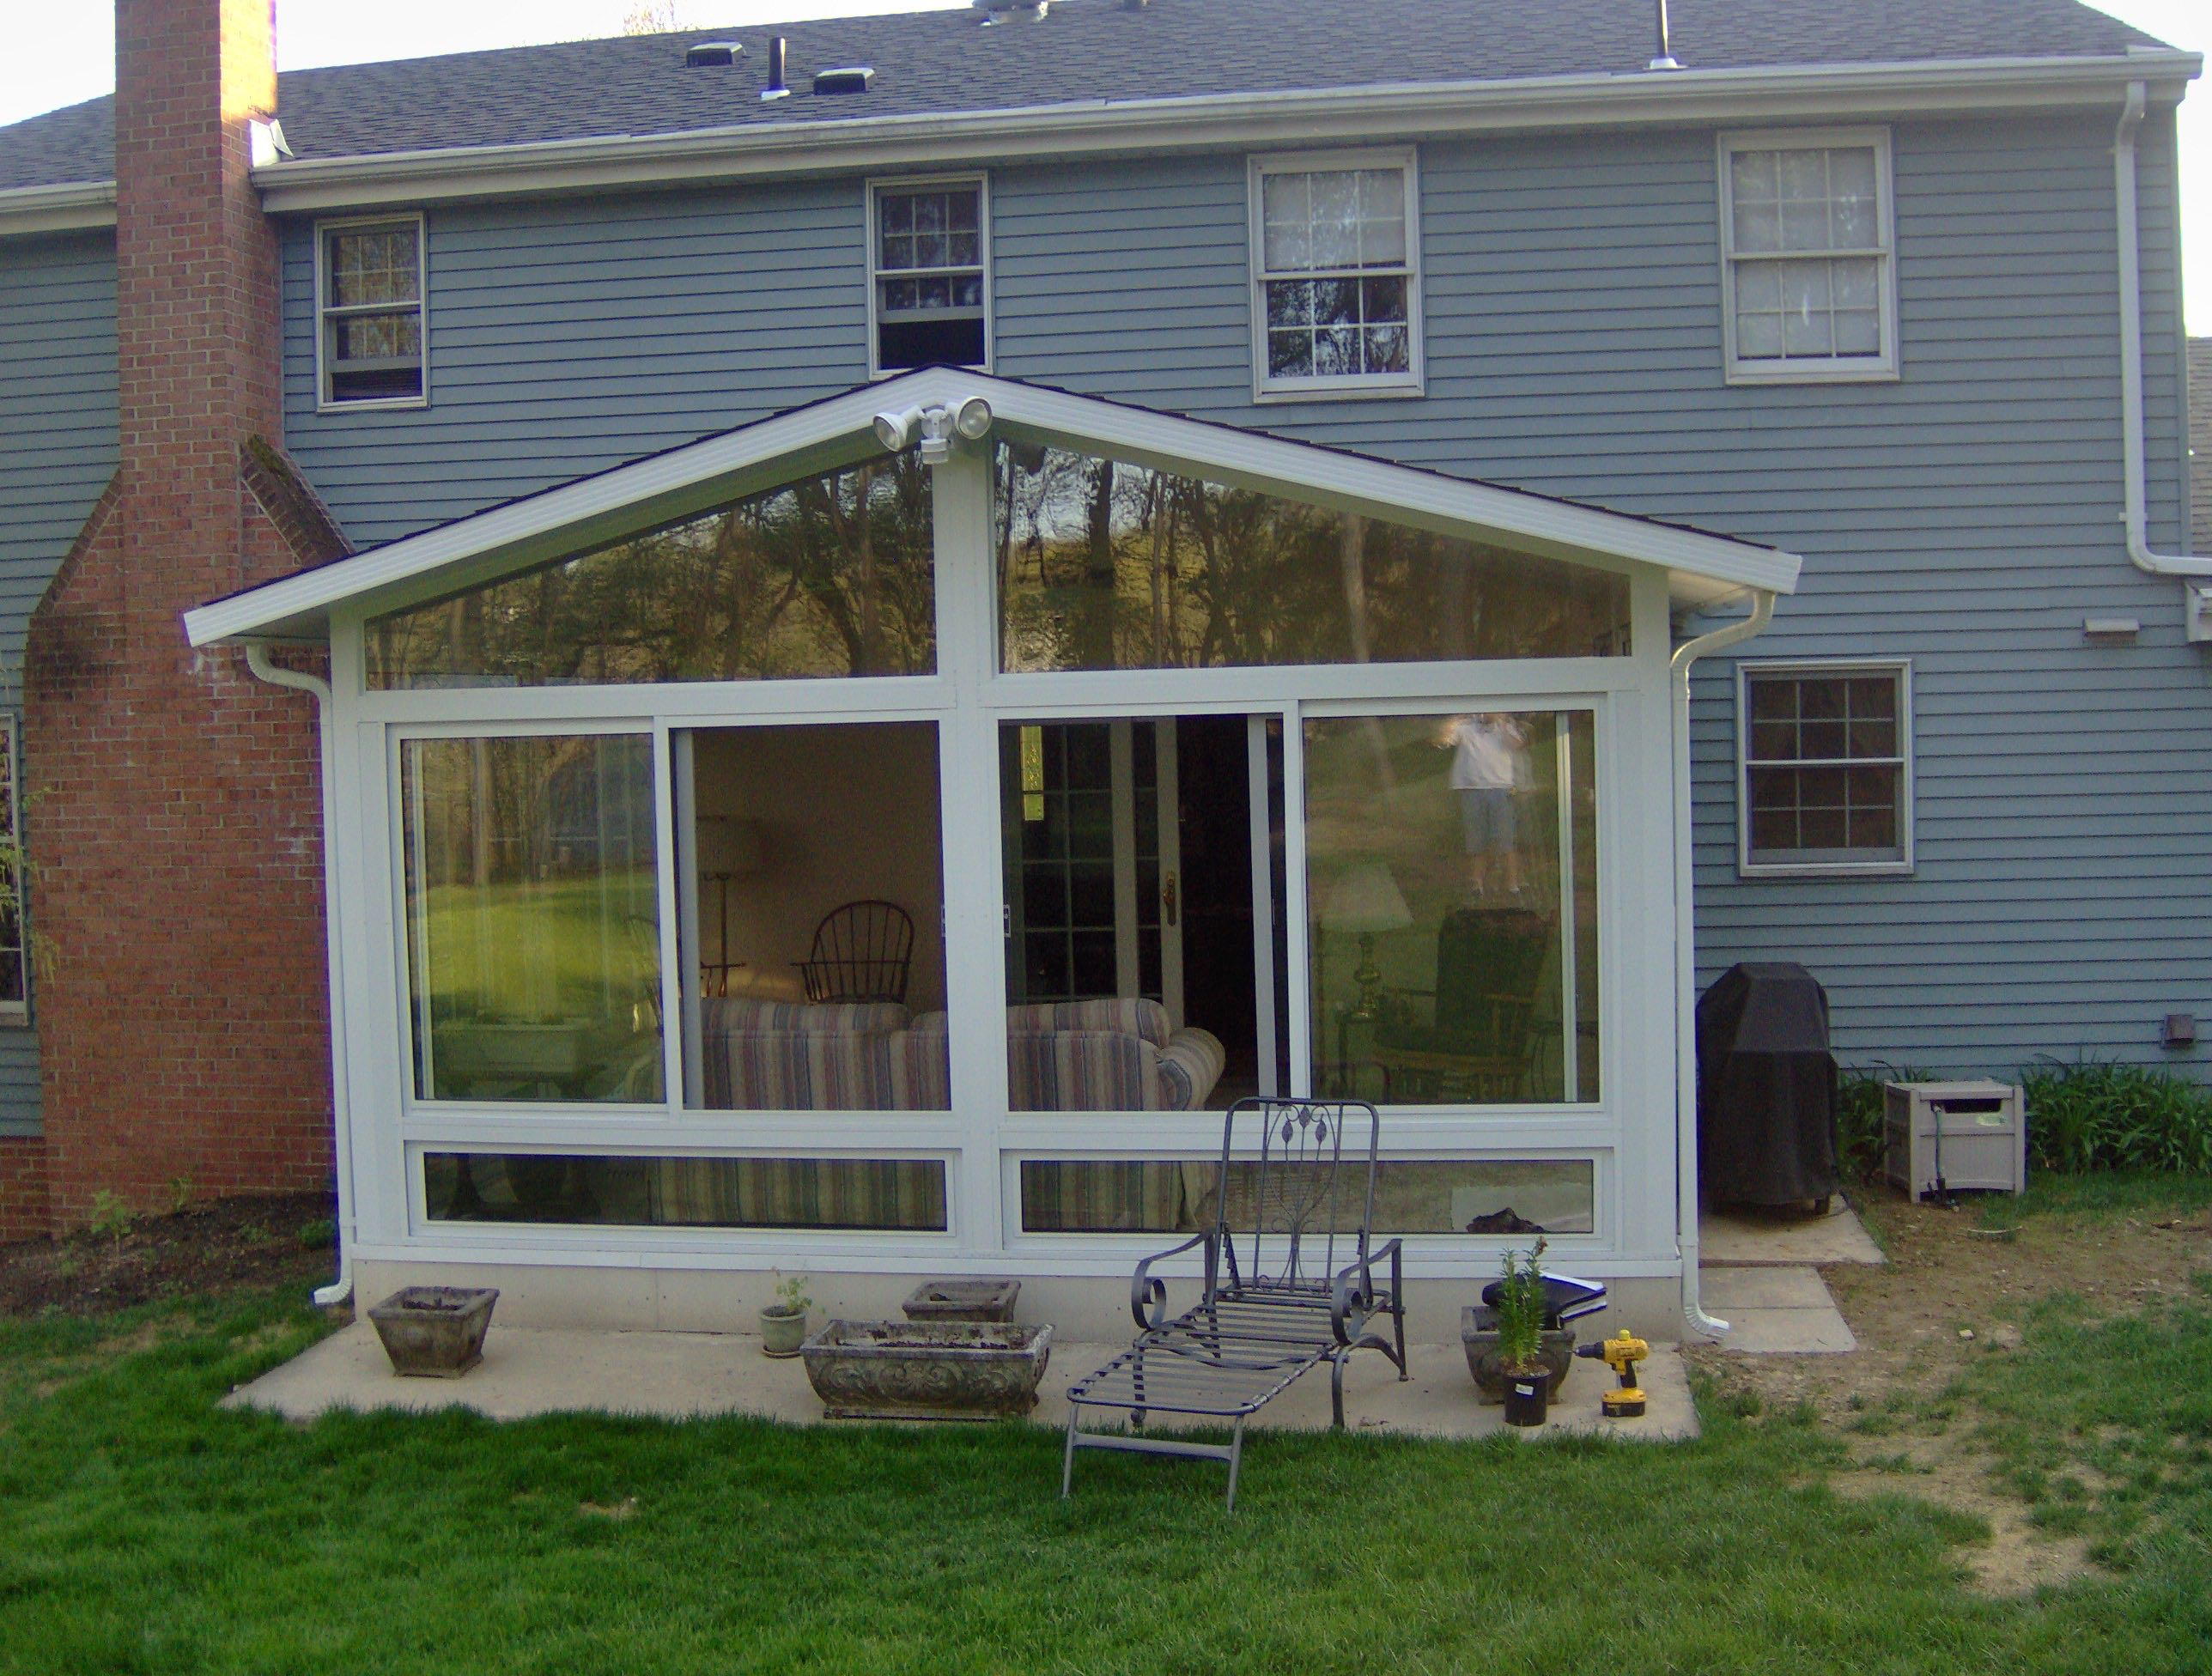 Betterliving patio sunrooms of pittsburgh for Backyard sunroom